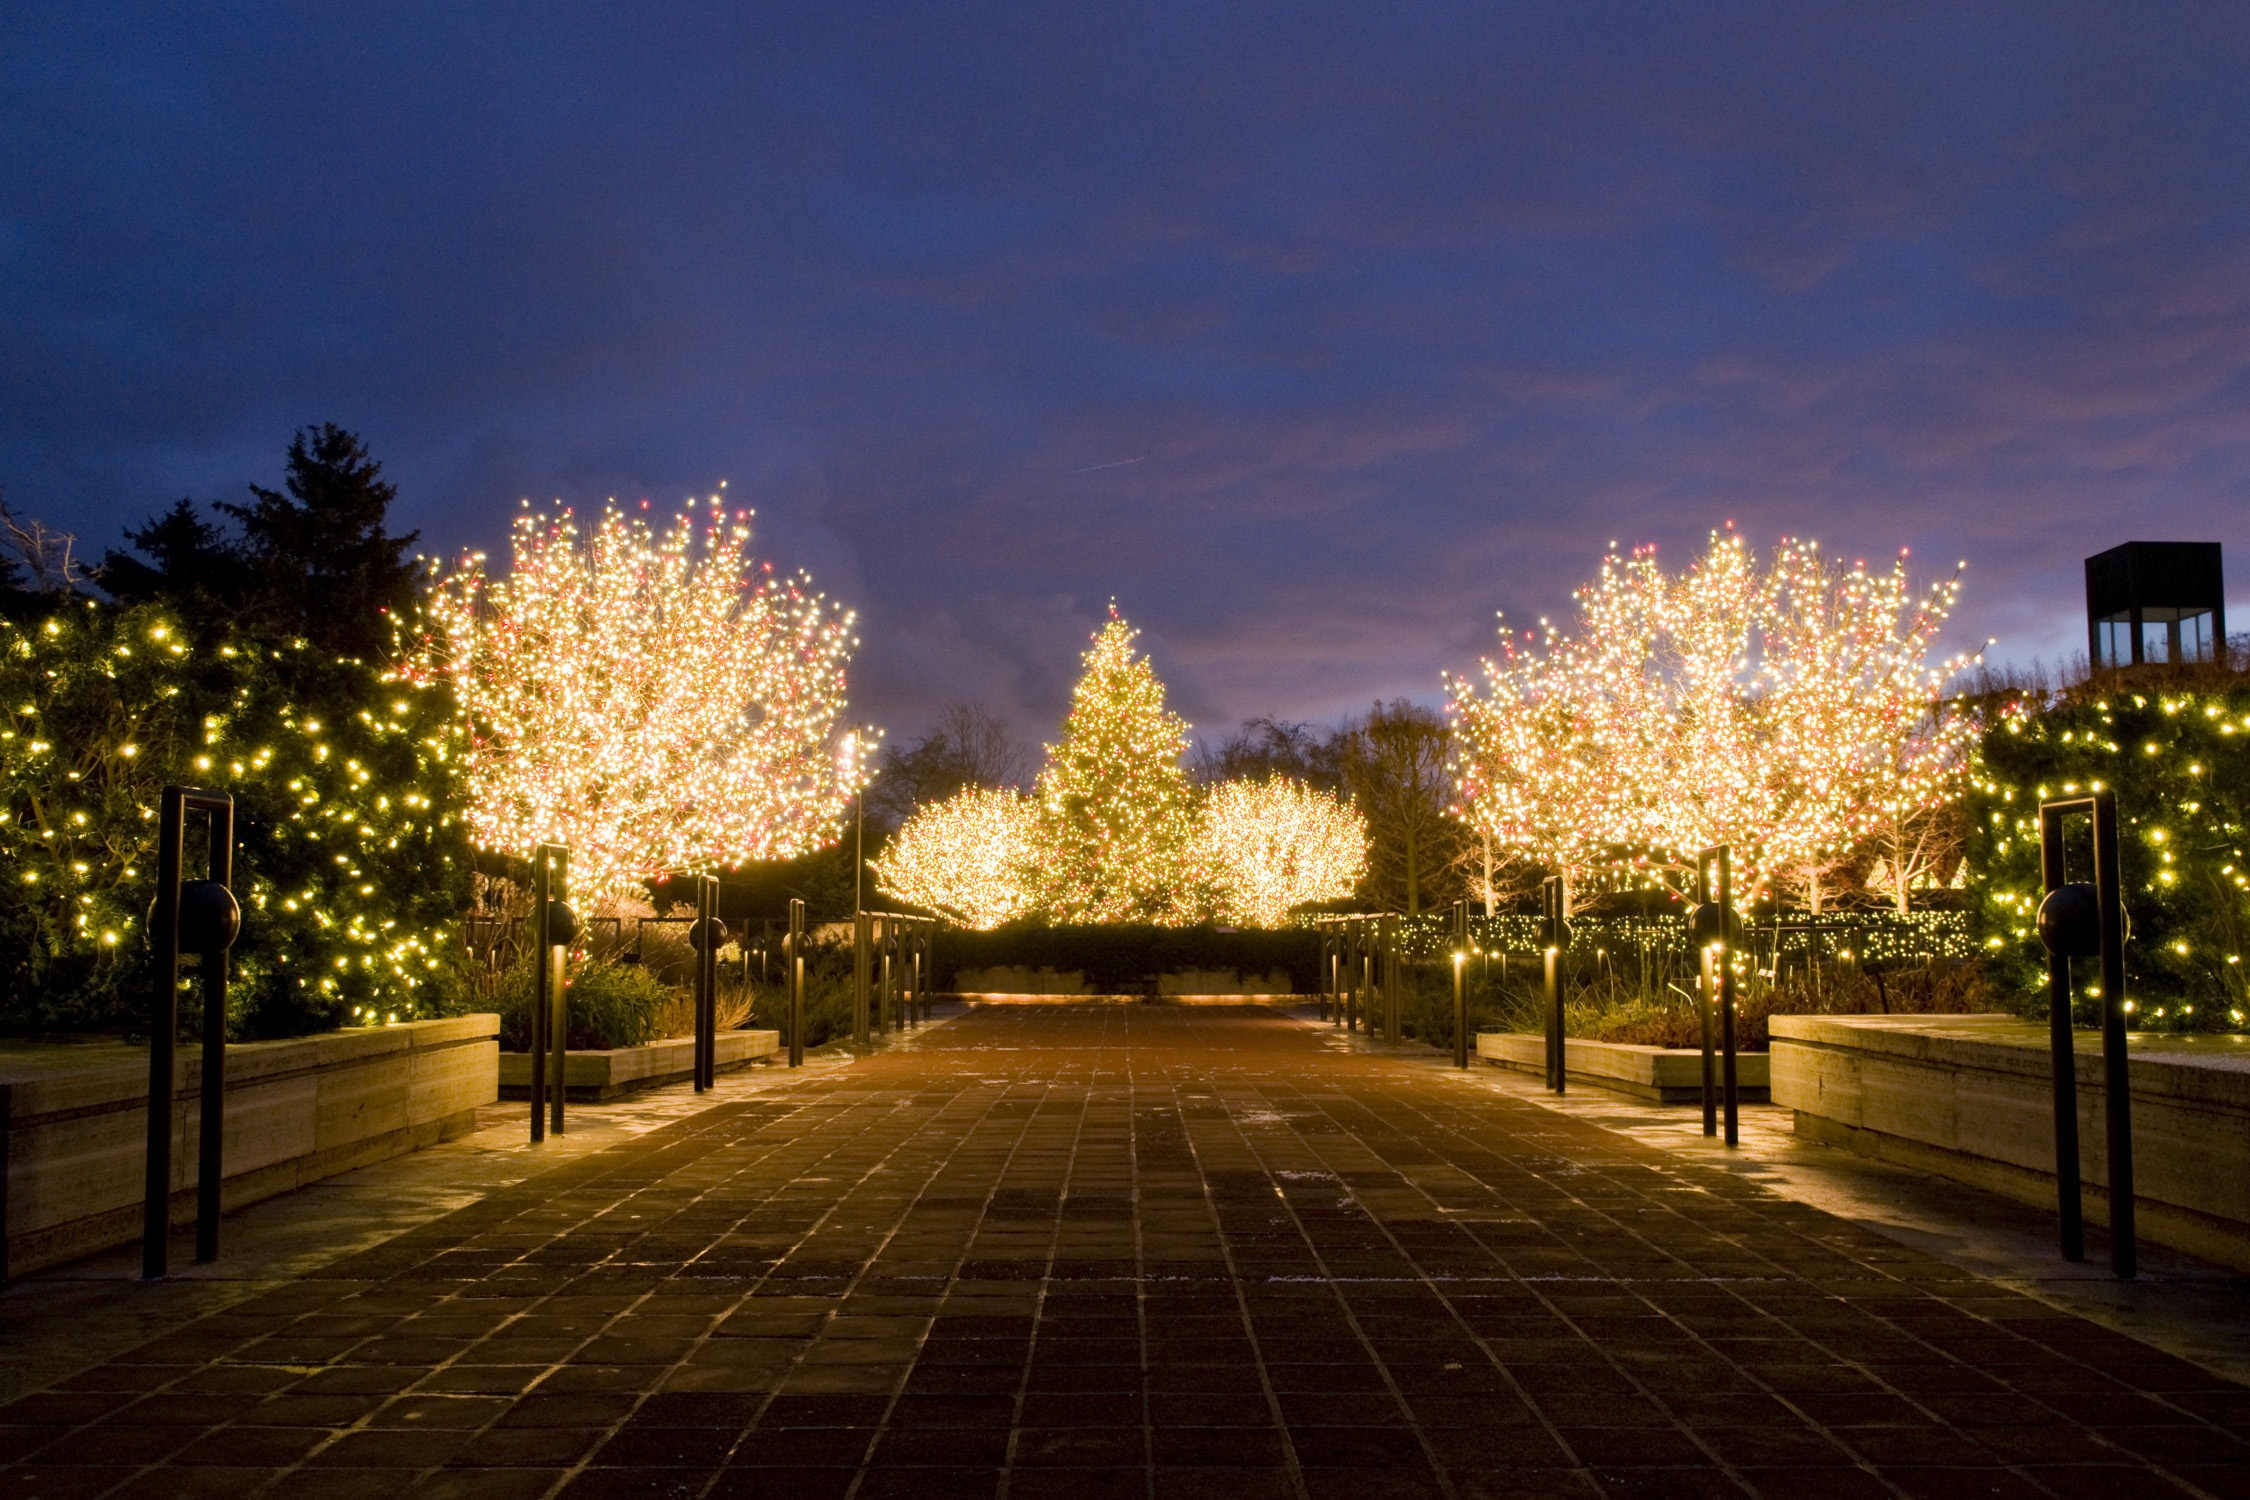 Capturing Holiday Lights at Chicago Botanic Garden